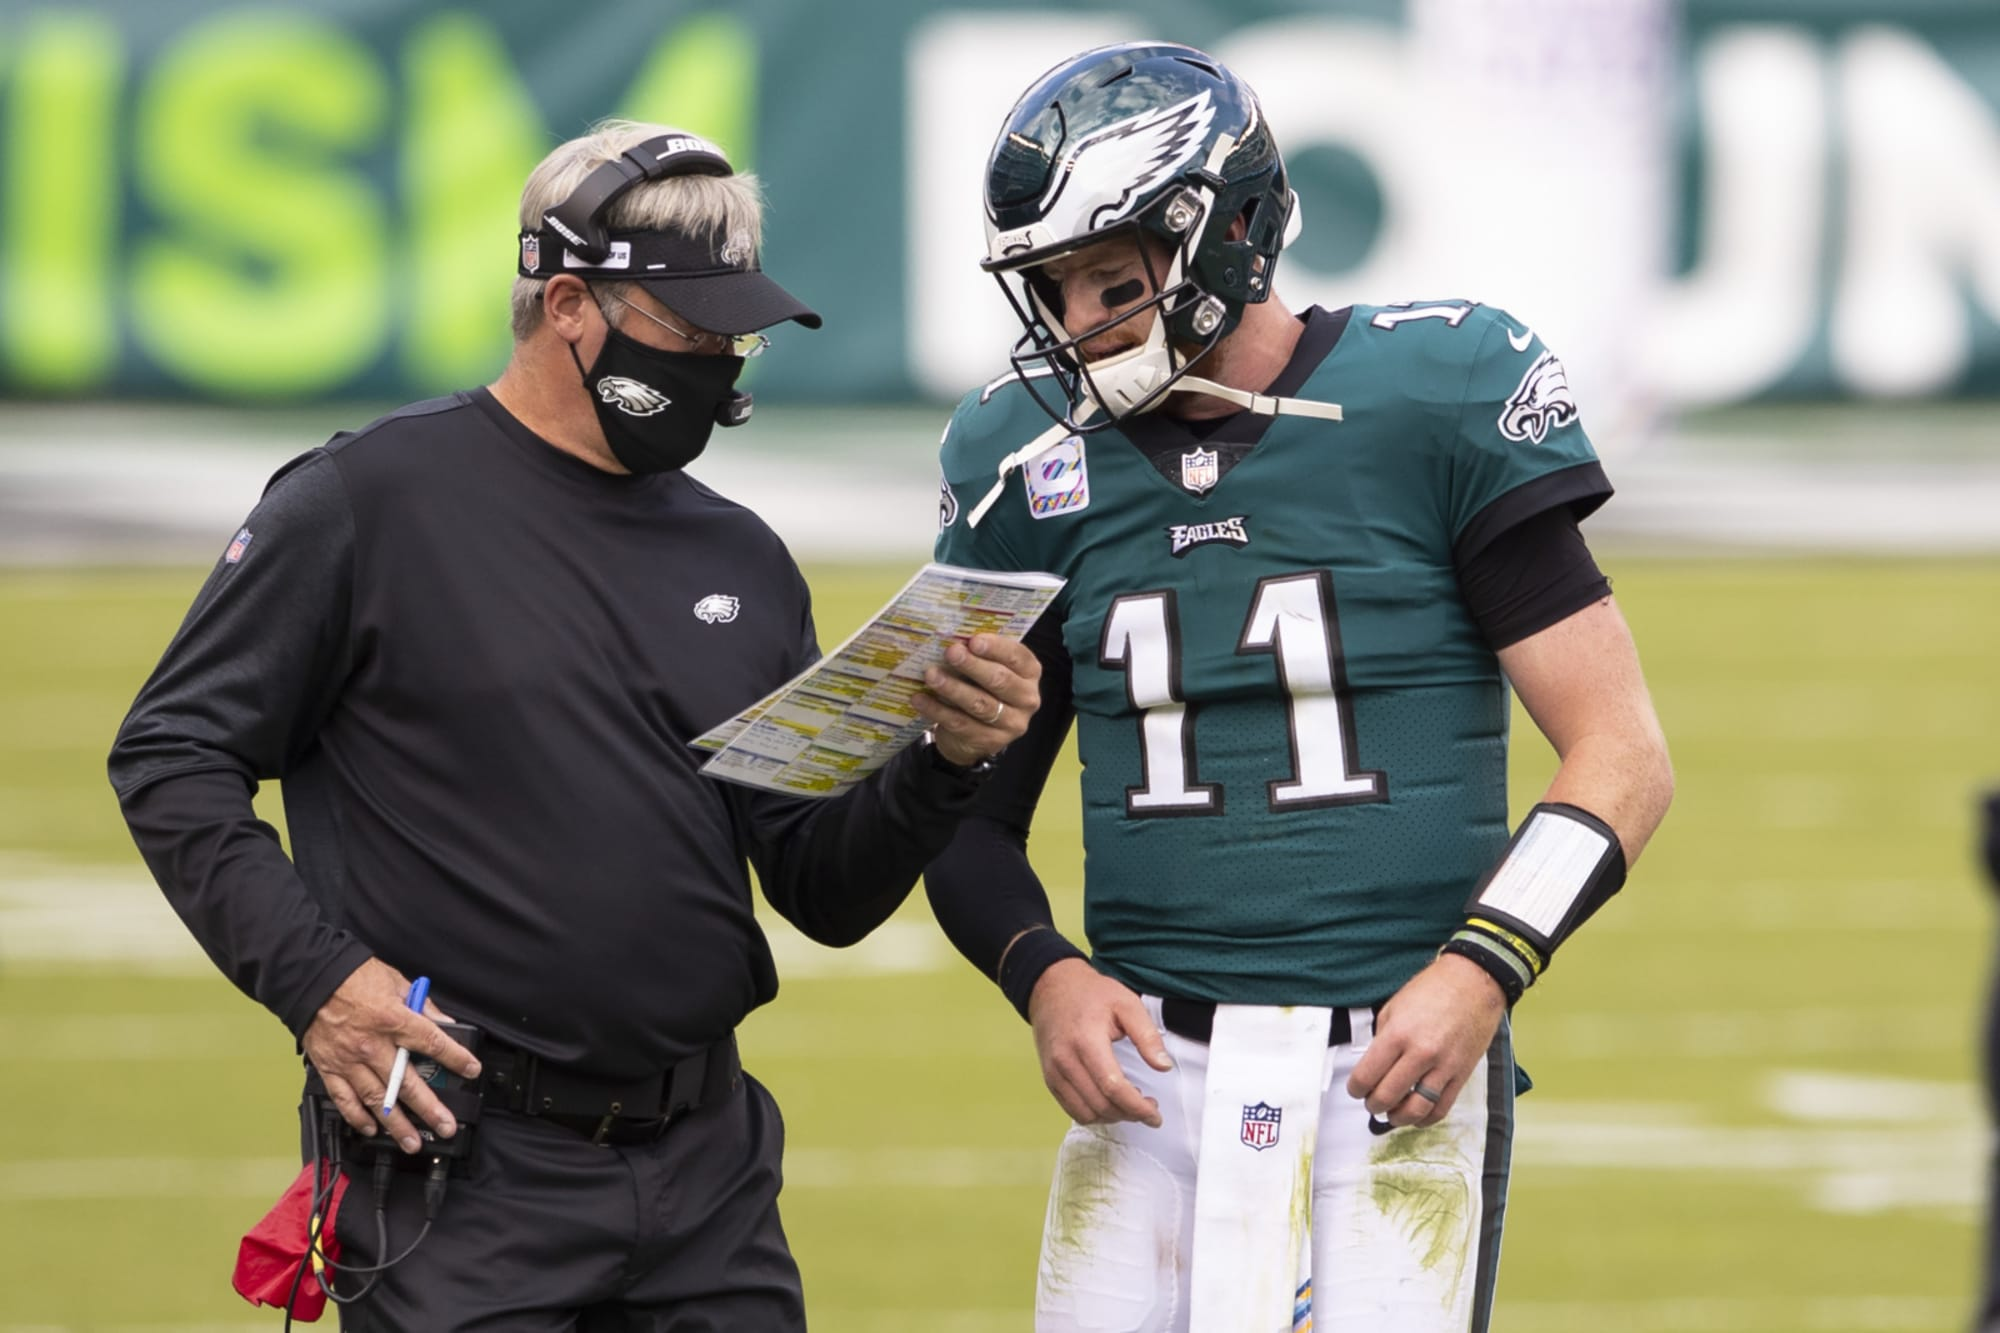 Colts: Doug Pederson has revisionist history on Carson Wentz's last year - Horseshoe Heroes